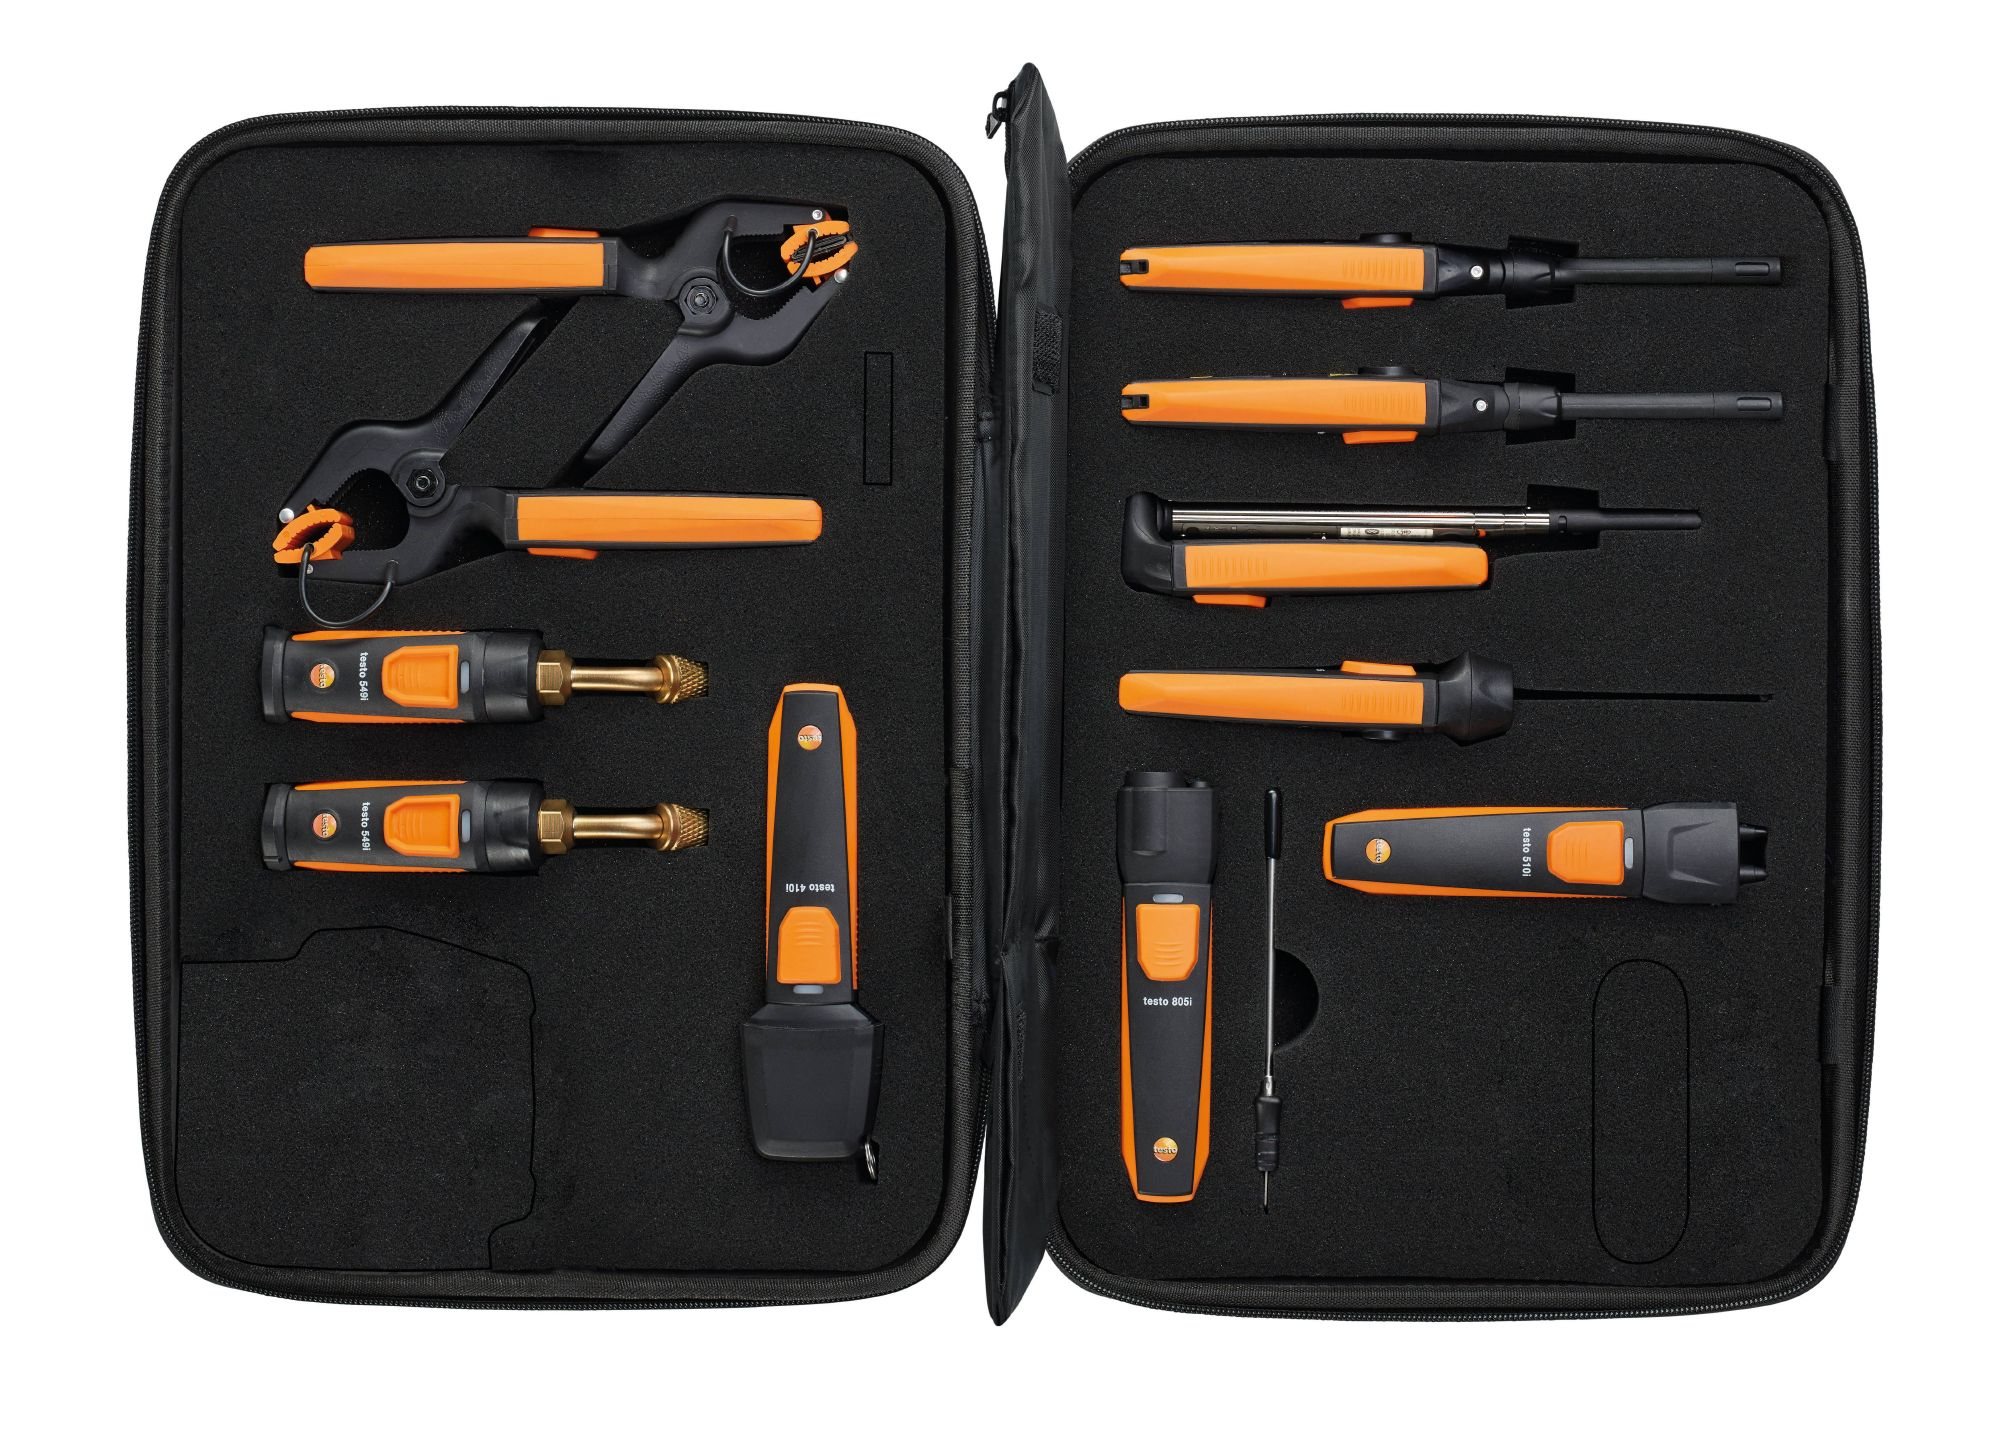 Kit CVC Ultimate testo Smart Probes